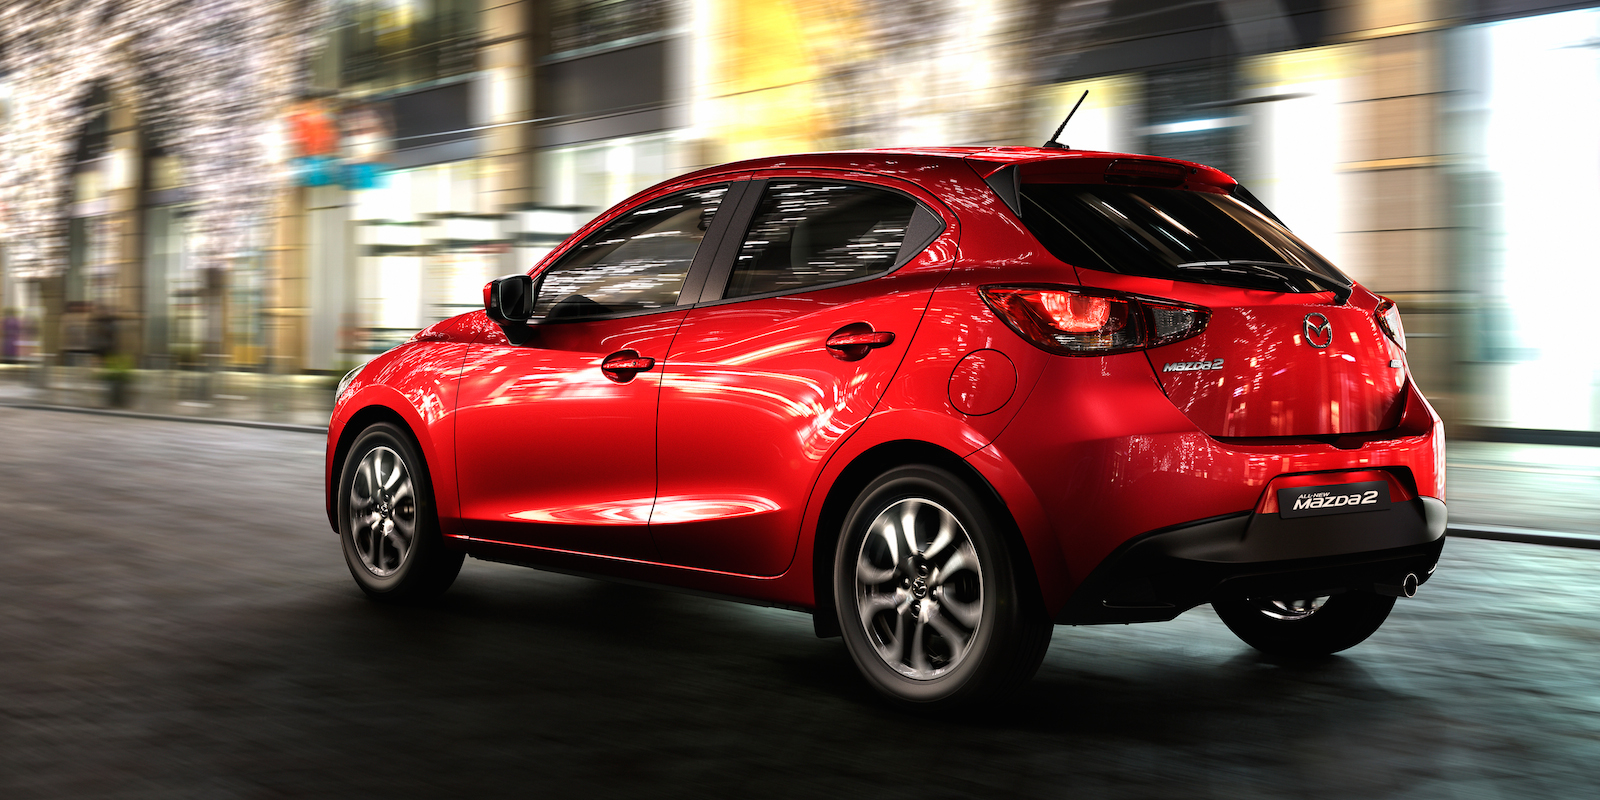 New Mazda 2 2015 Mazda 2 New Details Of Third Generation City Car